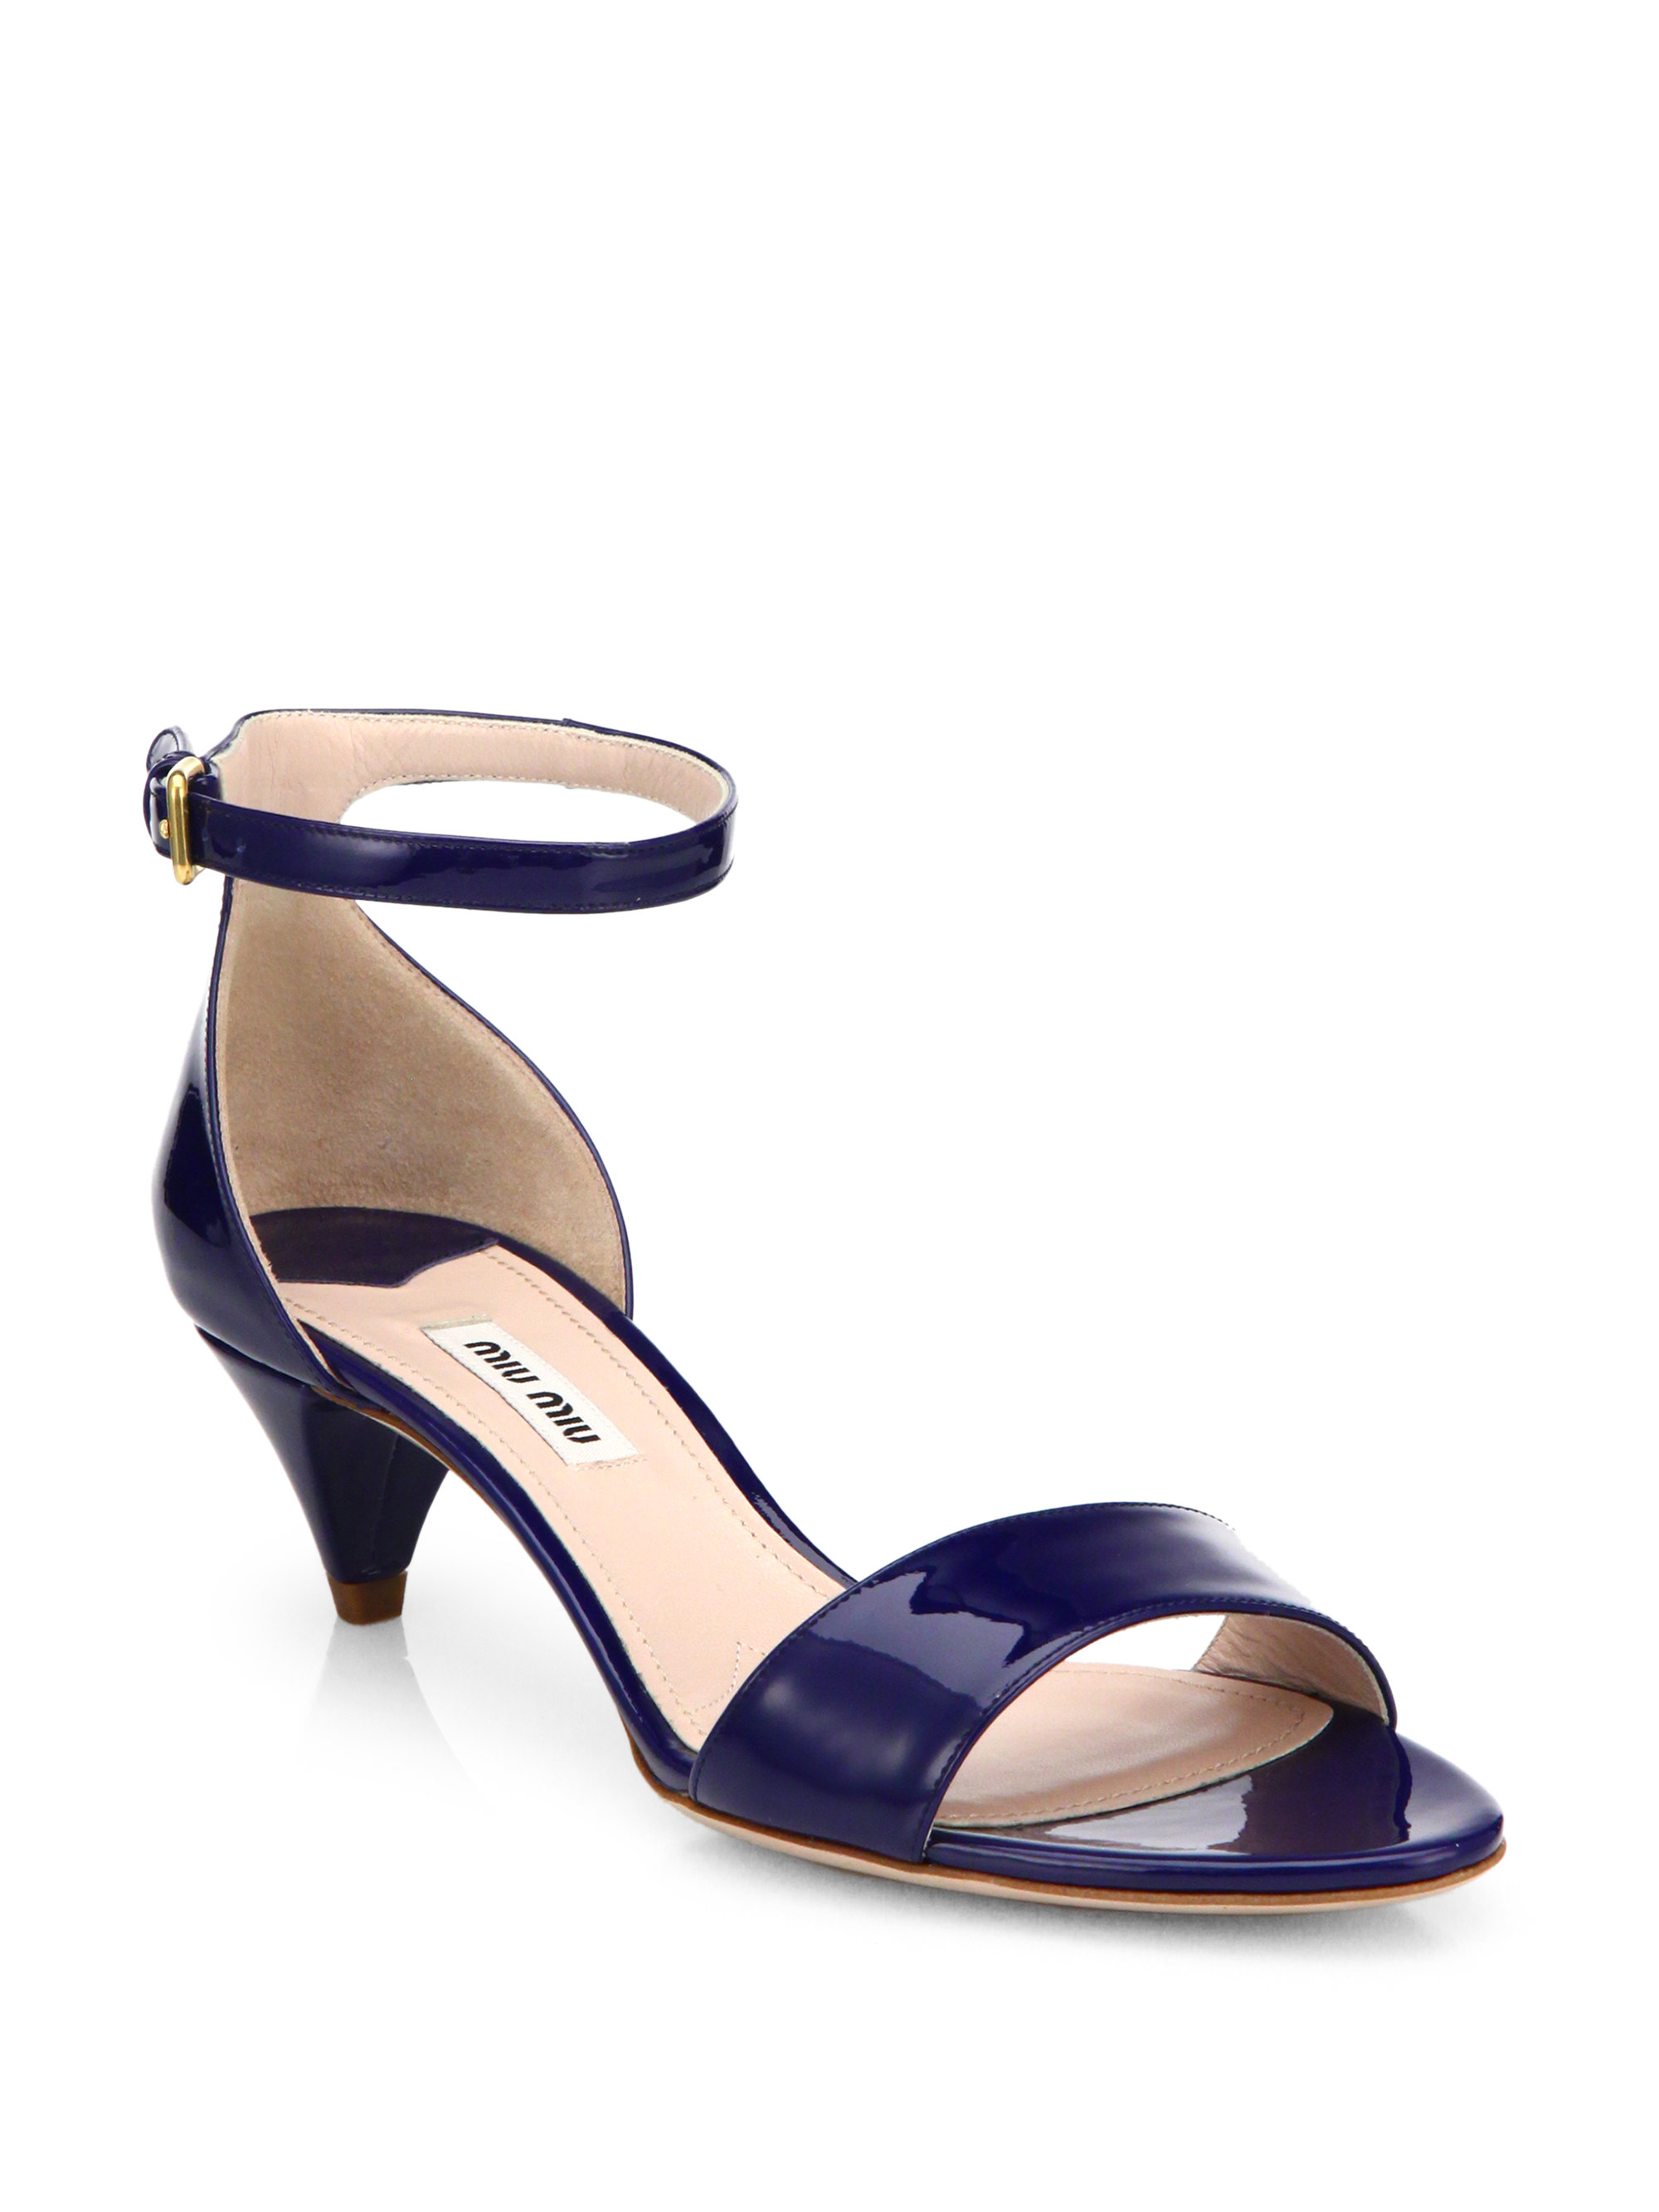 Miu miu Patent Leather Kitten Heel Sandals in Blue | Lyst